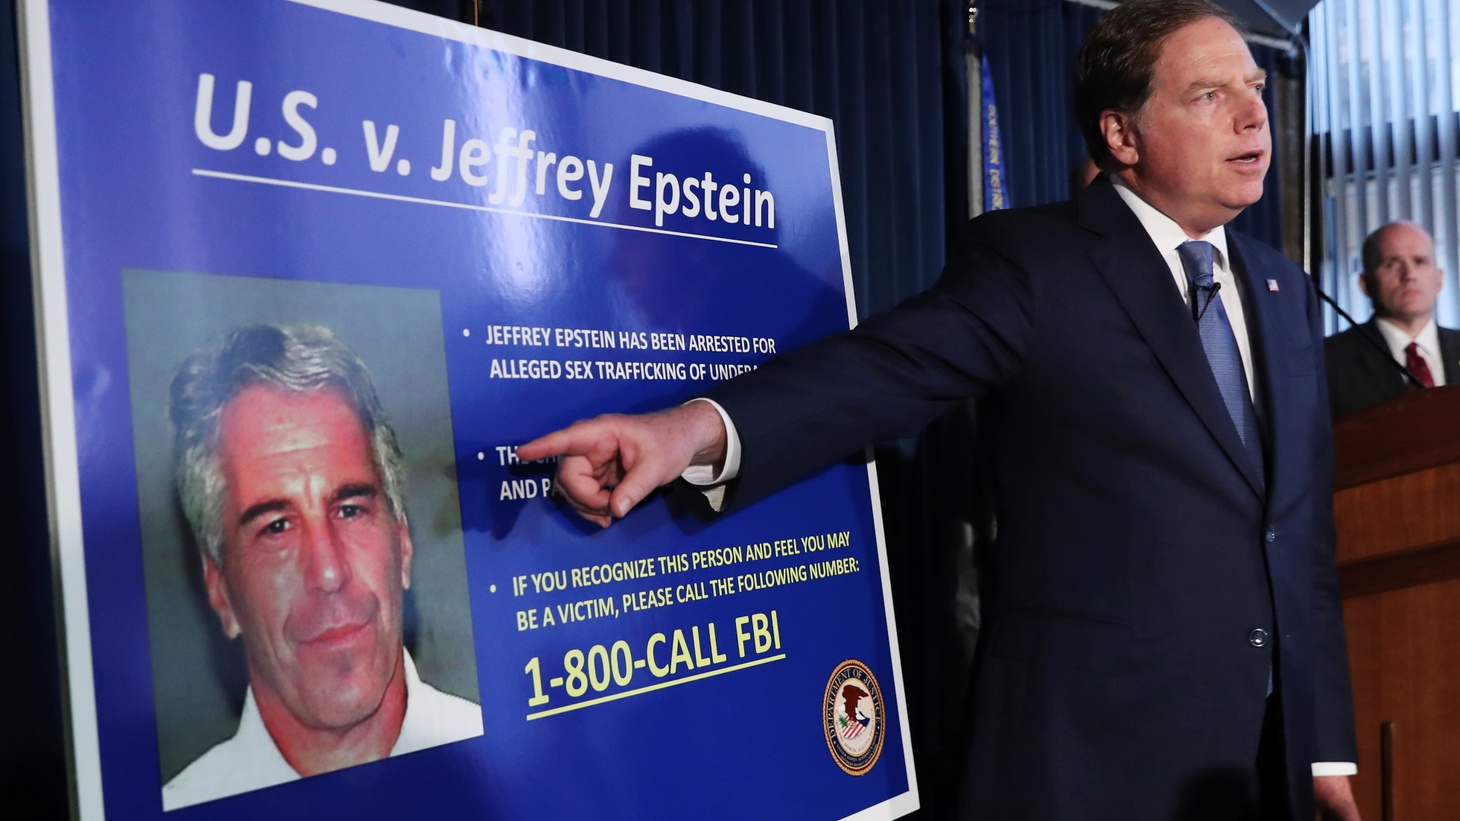 Geoffrey Berman, United States Attorney for the Southern District of New York, points to a photograph of Jeffrey Epstein as he announces the financier's charges of sex trafficking of minors and conspiracy to commit sex trafficking of minors, in New York, U.S., July 8, 2019.